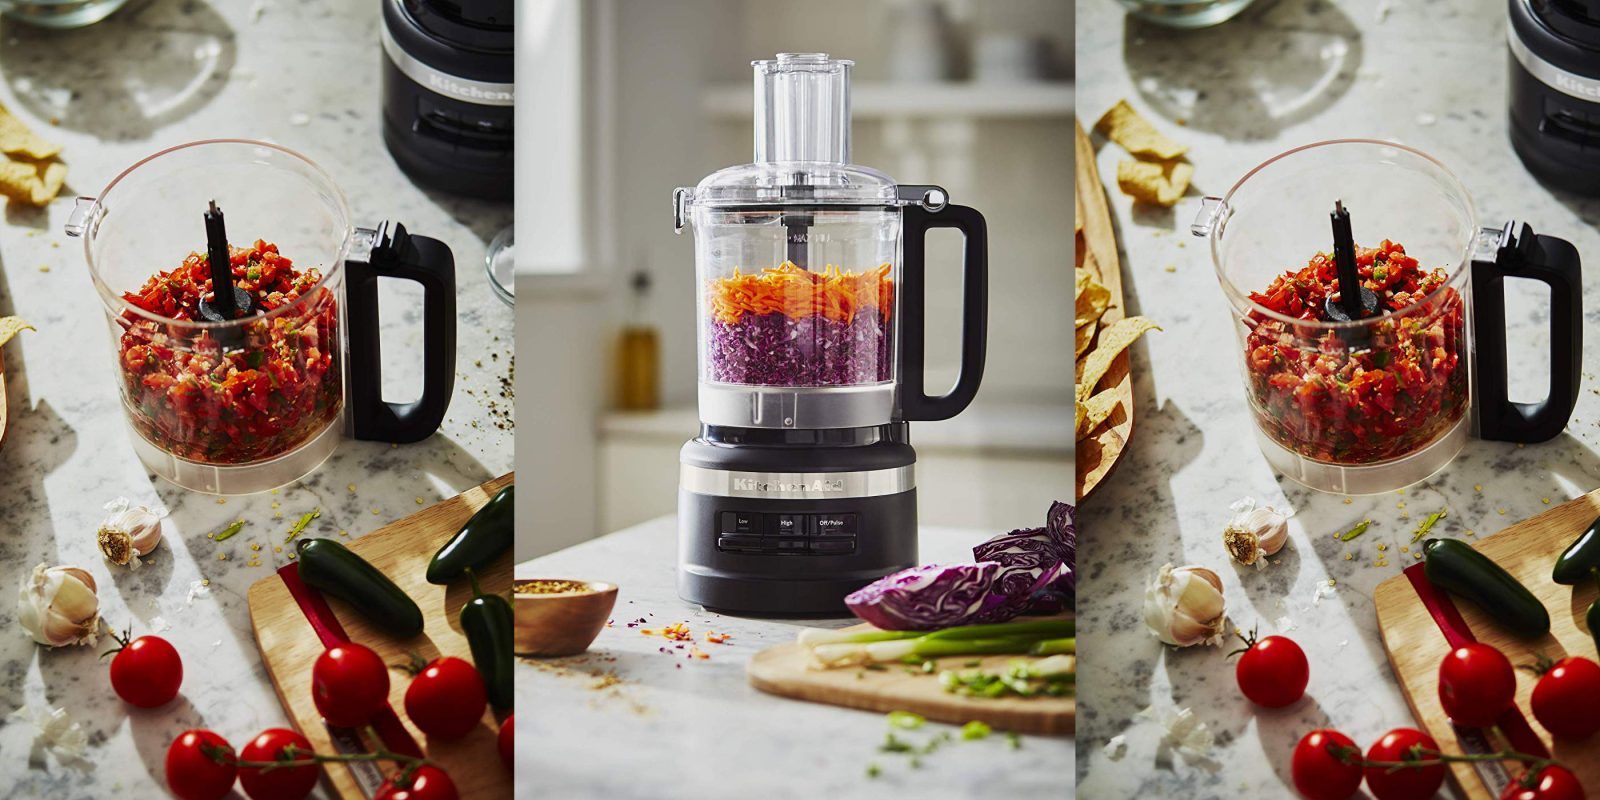 Kitchenaid S 9 Cup Food Processor Is Down To 126 For Today Only Reg Up To 240 9to5toys